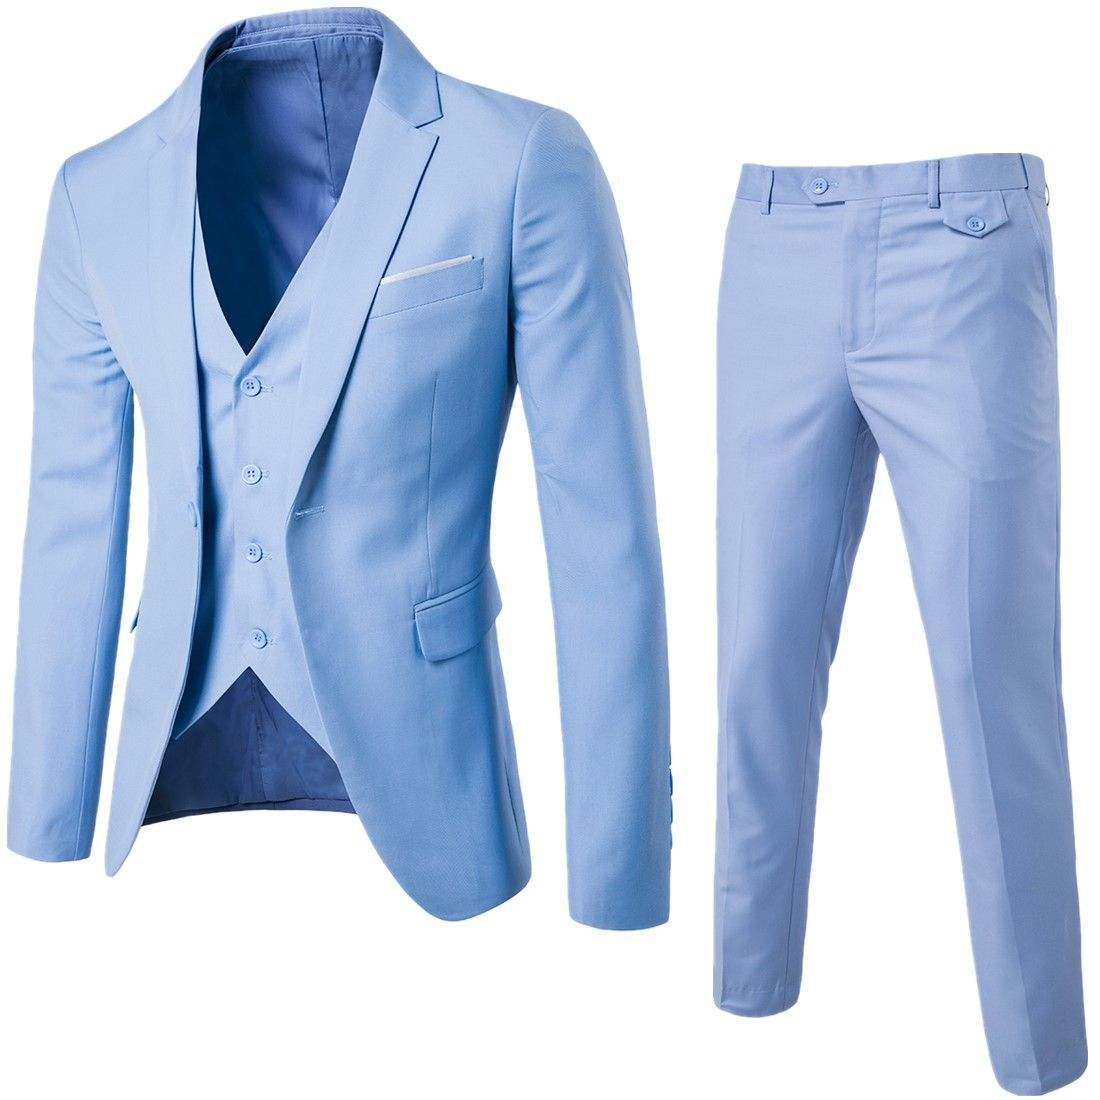 New Style MEN'S Suit Set Korean-style Slim Fit Fashion Small Suit Pants Men's Groom Formal Dress Casual Formal Wear Three-piece